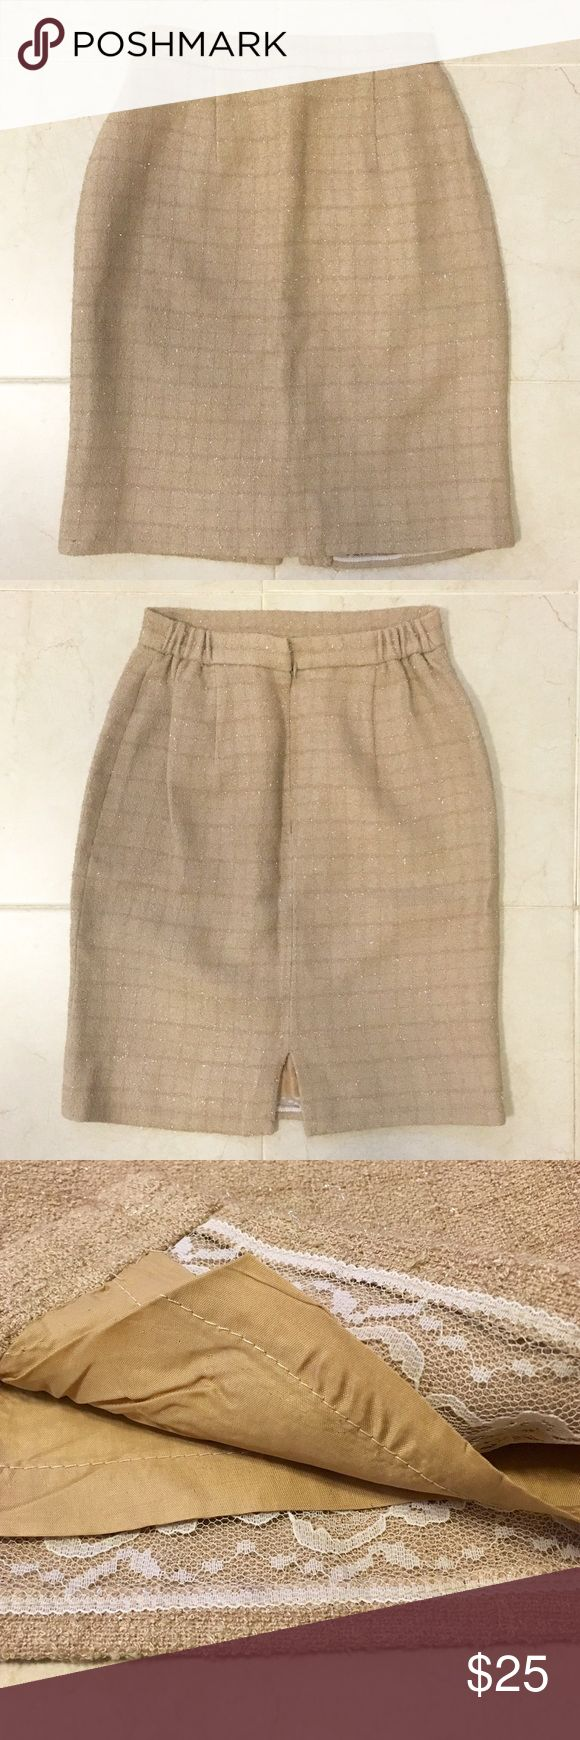 """Victor Costa Metallic Gold Beige Pencil Skirt 4 Victor Costa Metallic Gold Beige Pencil Skirt size 4. 24"""" waist unstretched. Goes up to 28"""" waist. 21"""" length. High waisted. Zip up back closure. Fully lined. Beautiful and sparkly! Perfect for the holidays! Excellent condition! No stains or holes. Victor Costa Skirts Pencil"""